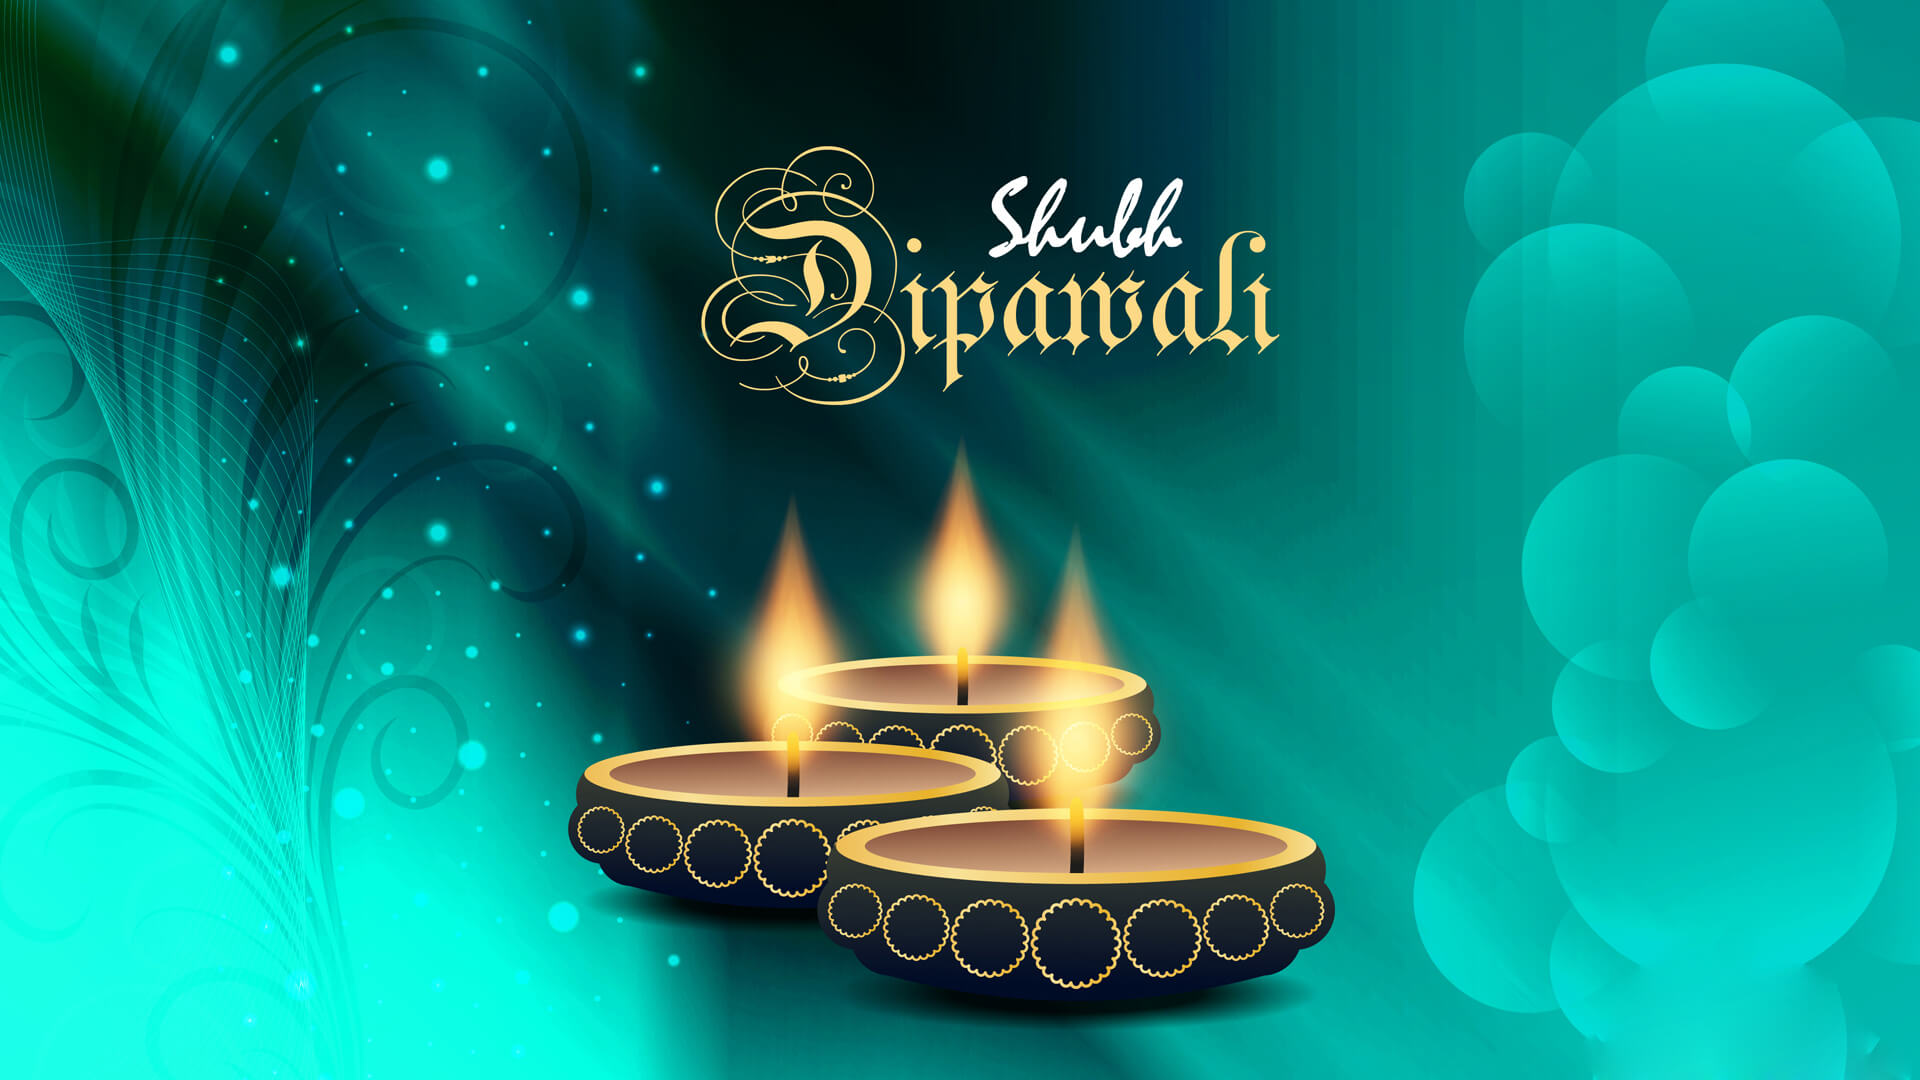 HD Picture of Deepavali